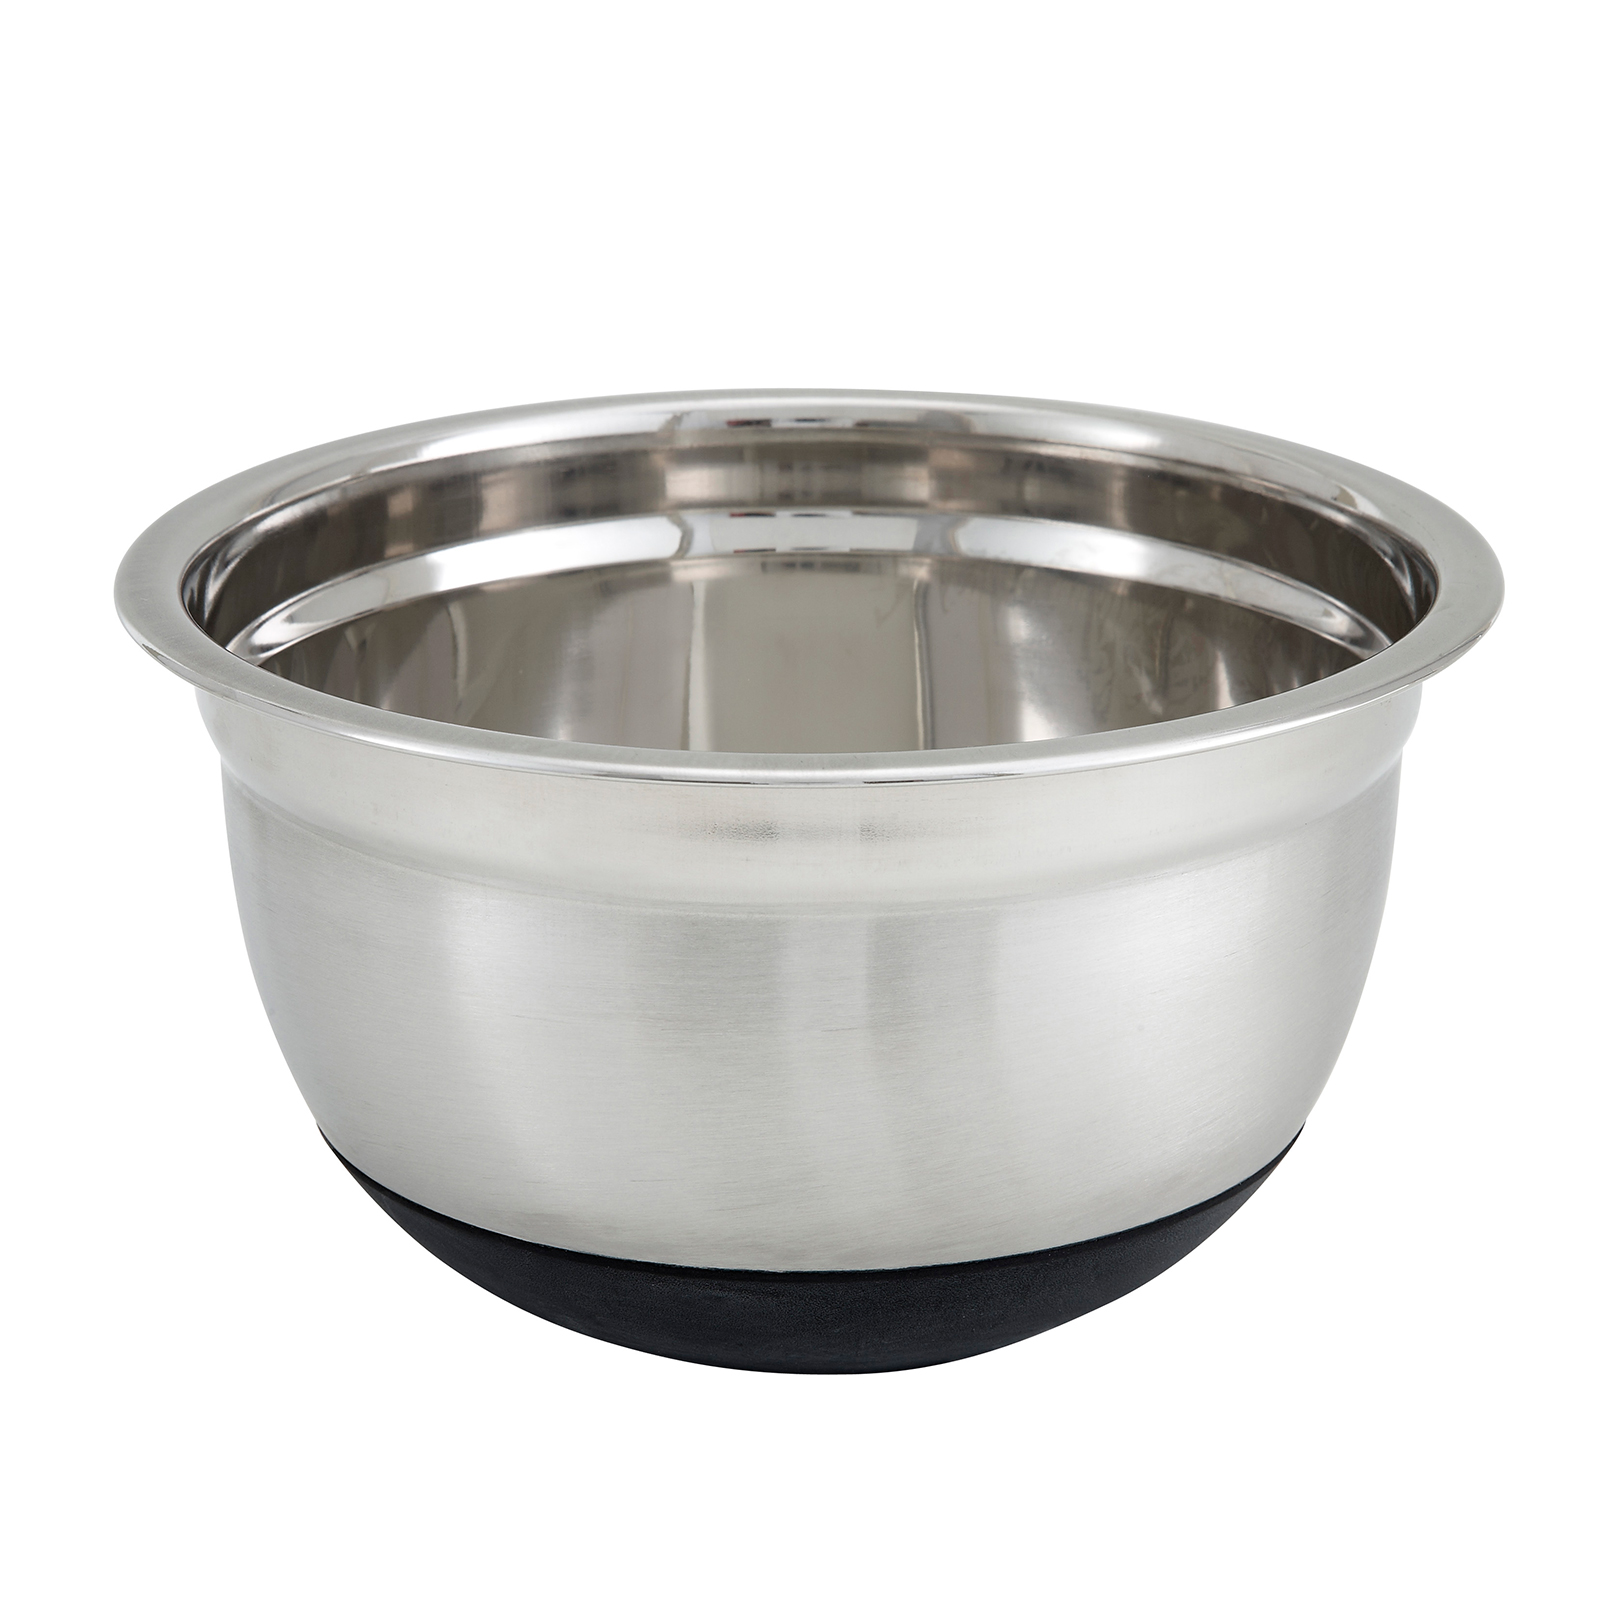 Winco MXRU-150 mixing bowl, metal